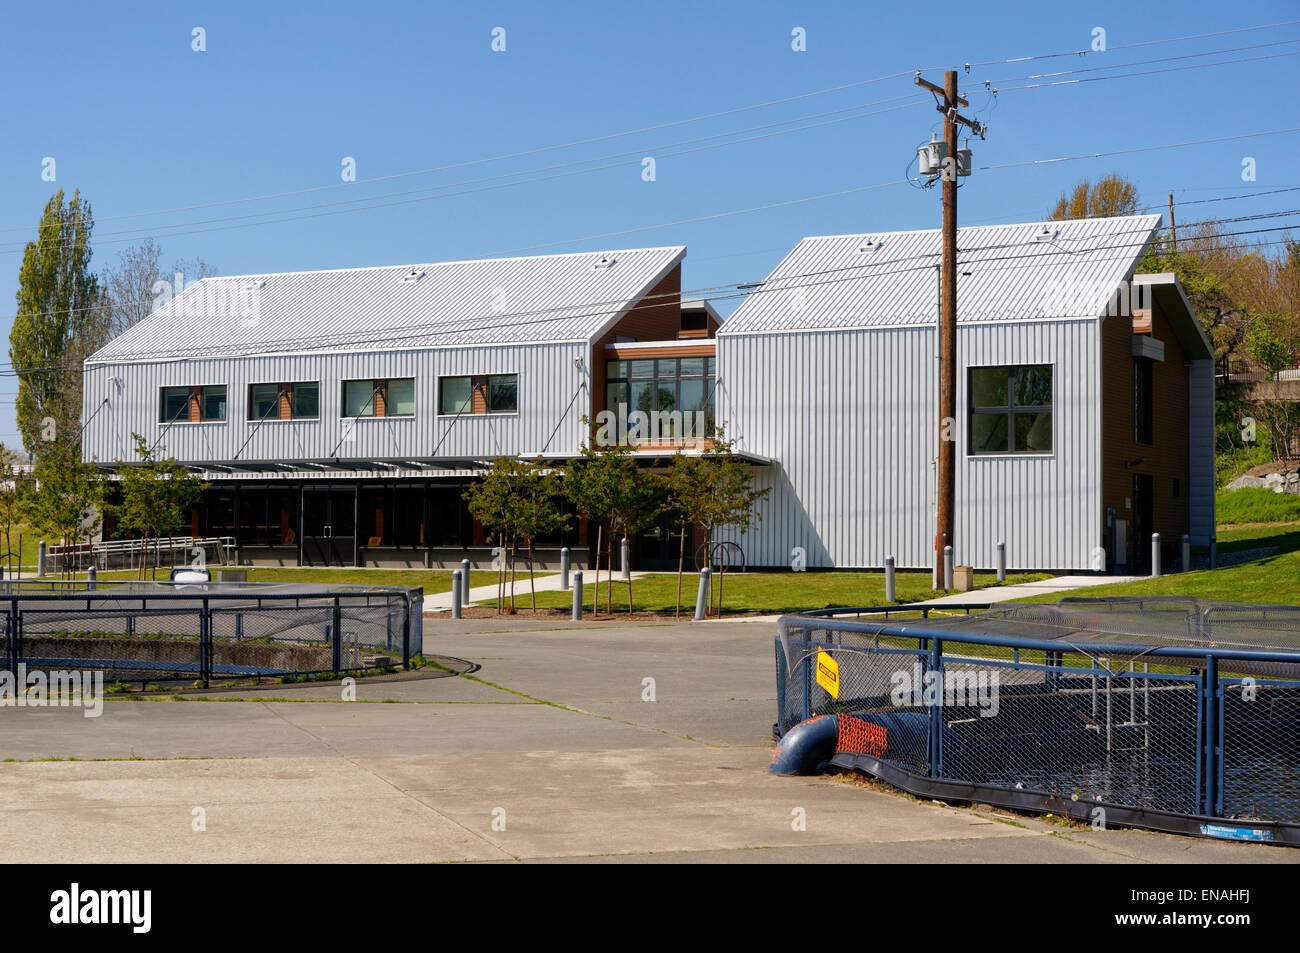 The Perry Center for Fisheries and Aquaculture Sciences, Maritime Heritage Center, Bellingham, Washington state, - Stock Image